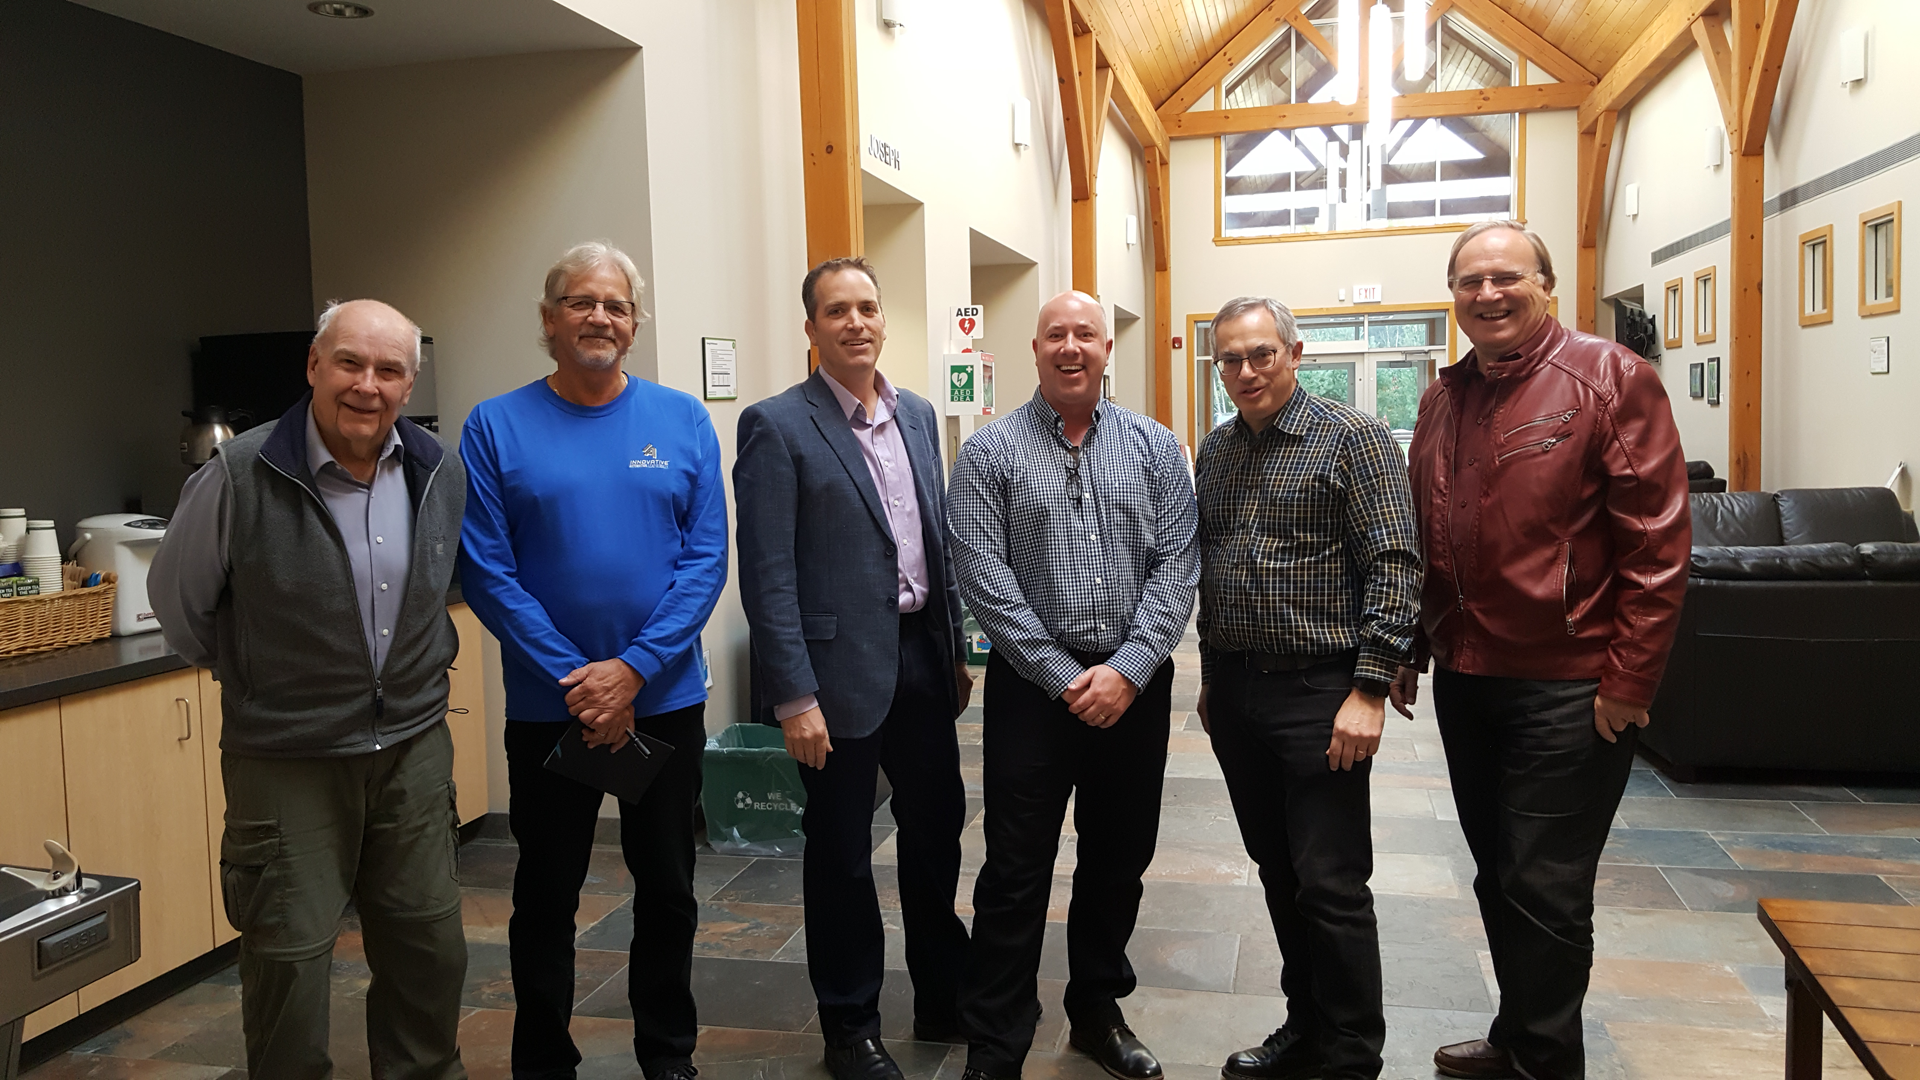 (Photo: left to right) John Cooper from PMCN, James Stobbe from Innovative Automation, Derek Berghout from Royal Bank, Kyle Boyko from InspireTechCanada, Tony Clement and Stuart Morley.